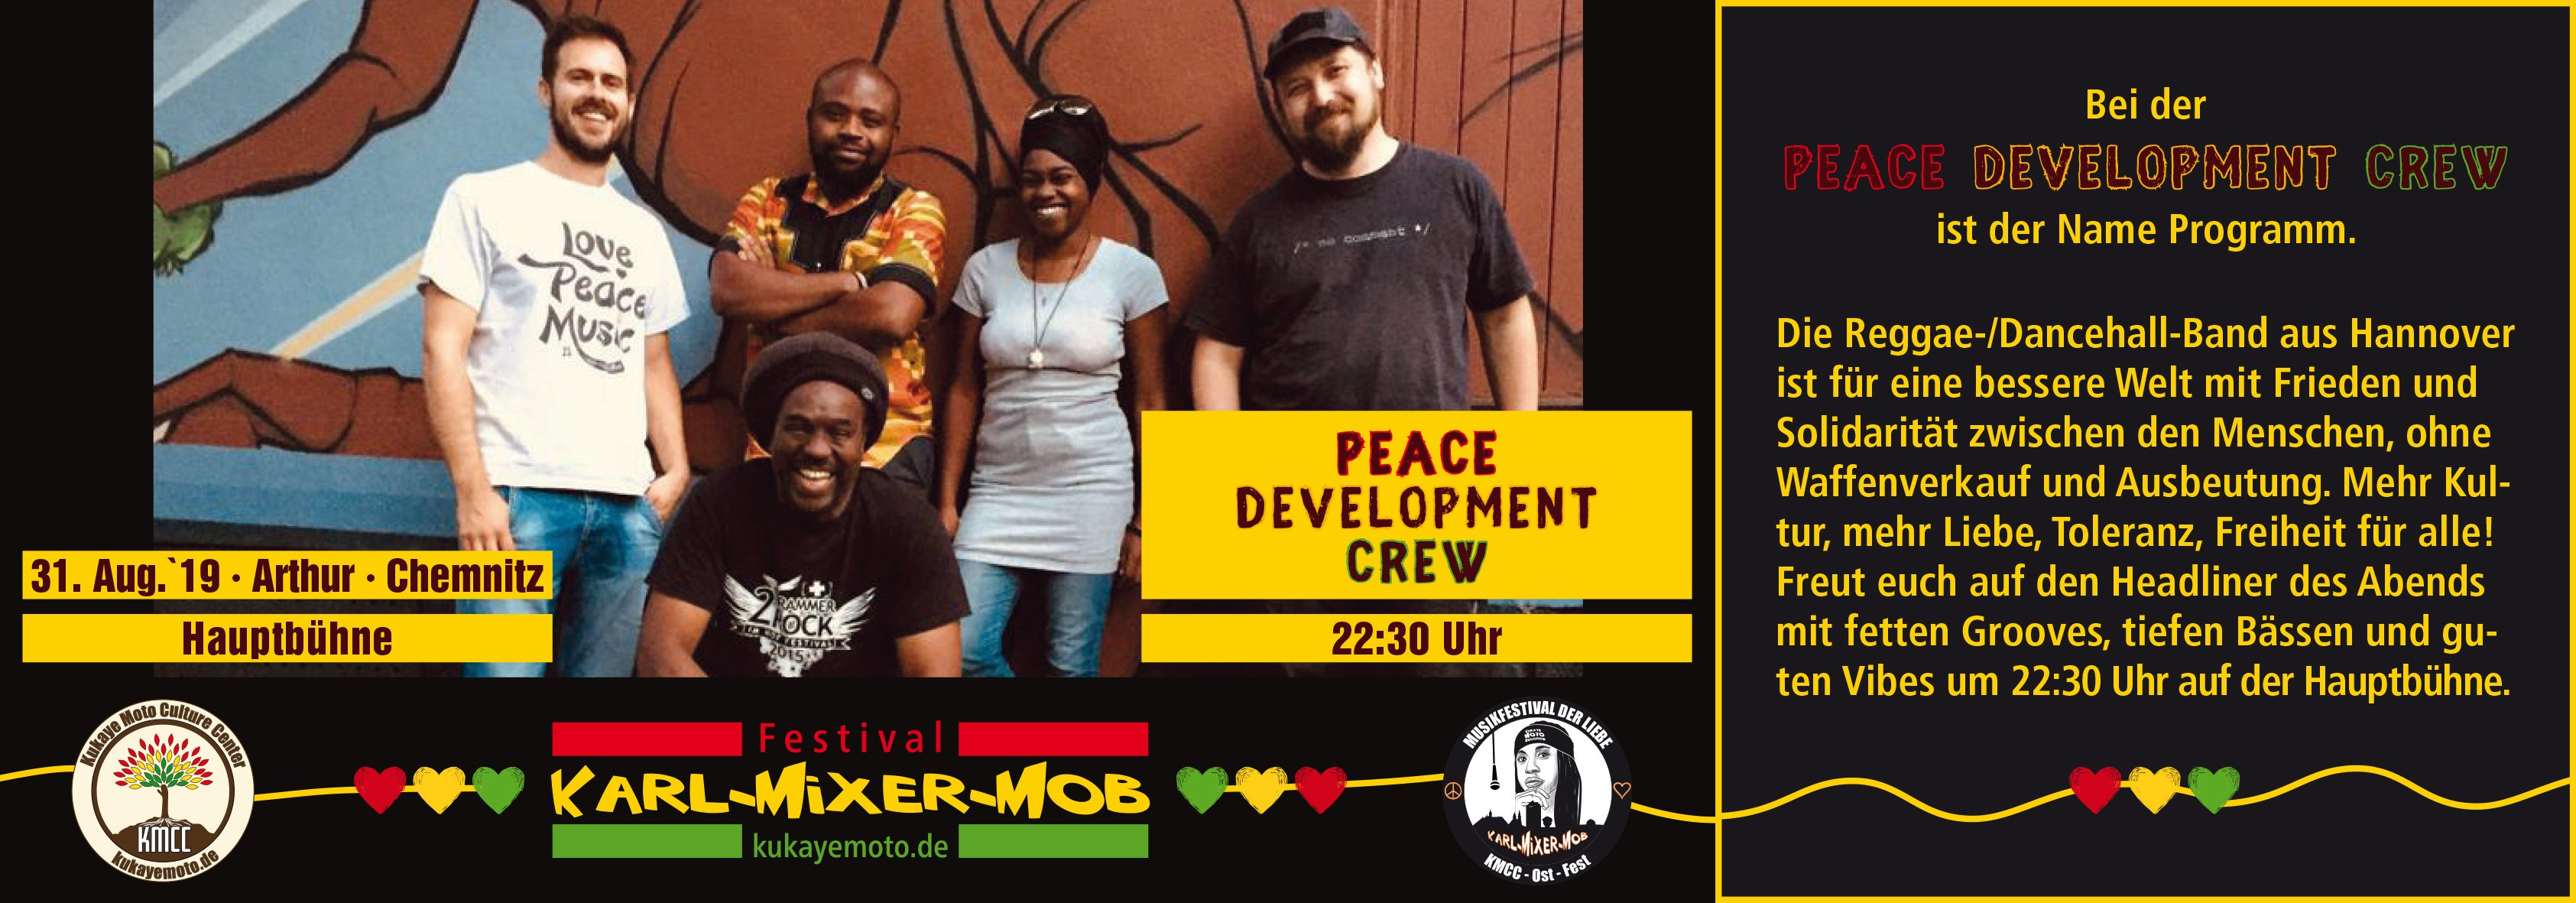 Ankündigung Peace Development Crew